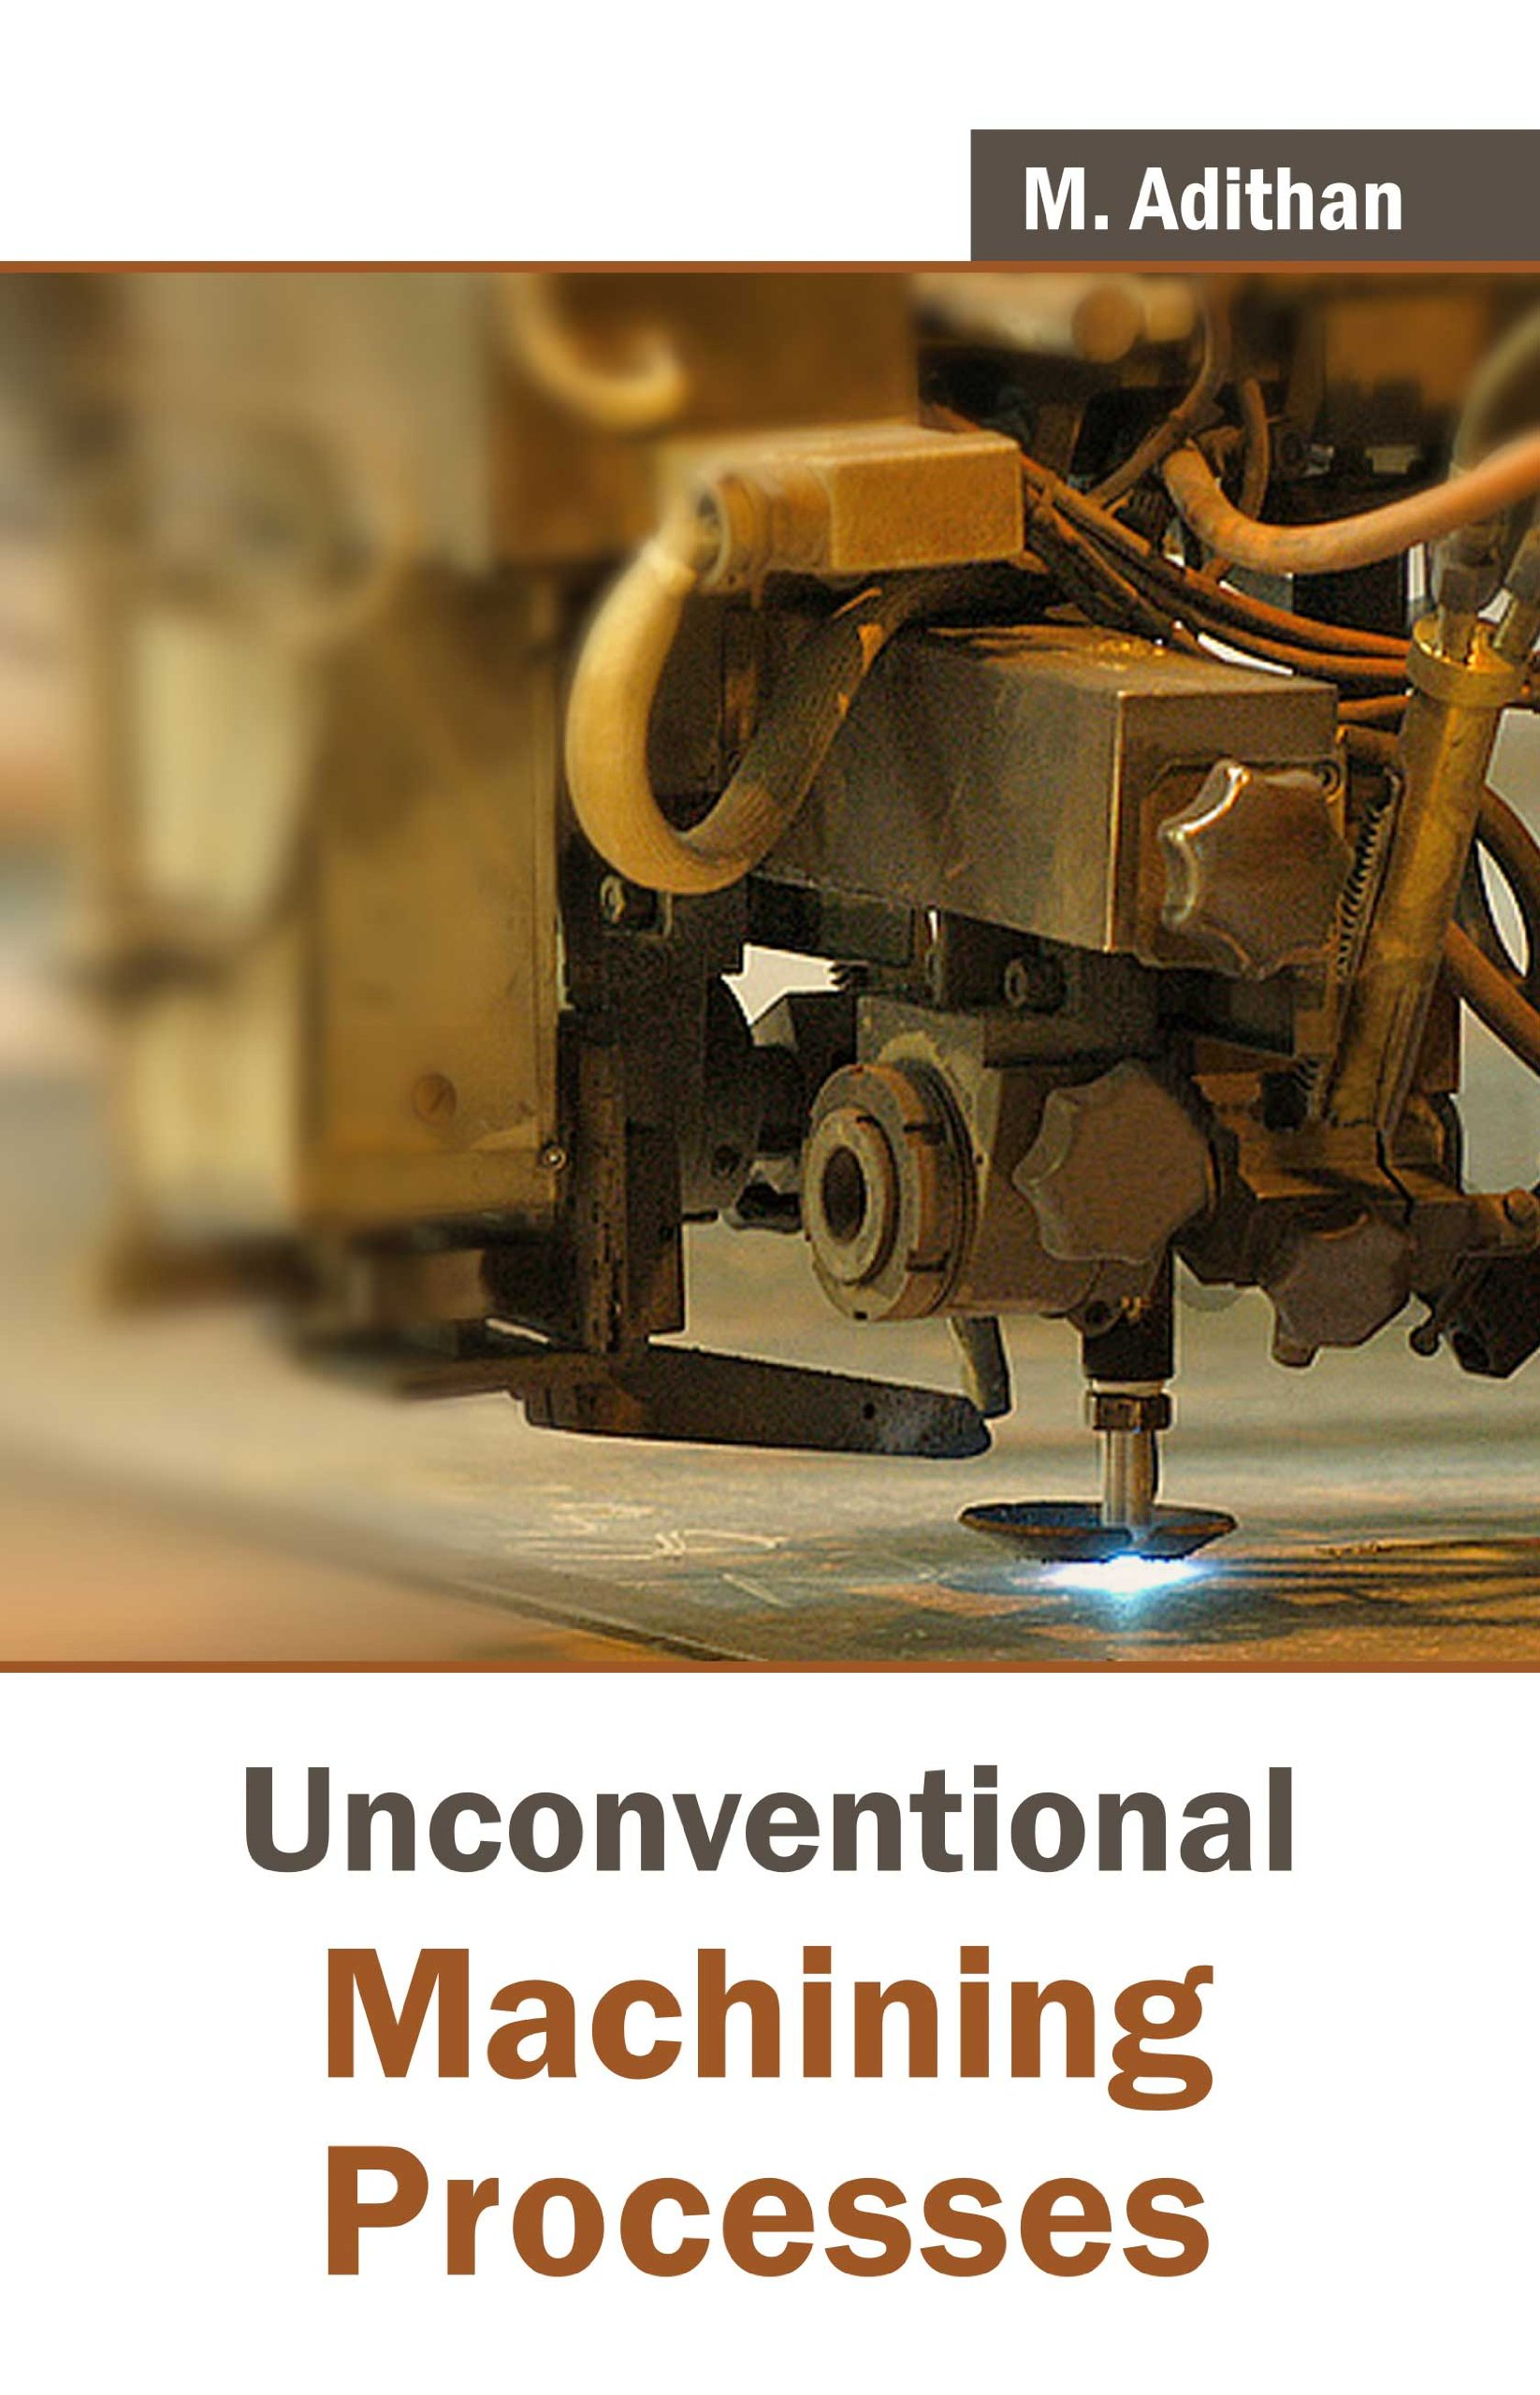 ME6004 Unconventional Machining Processes